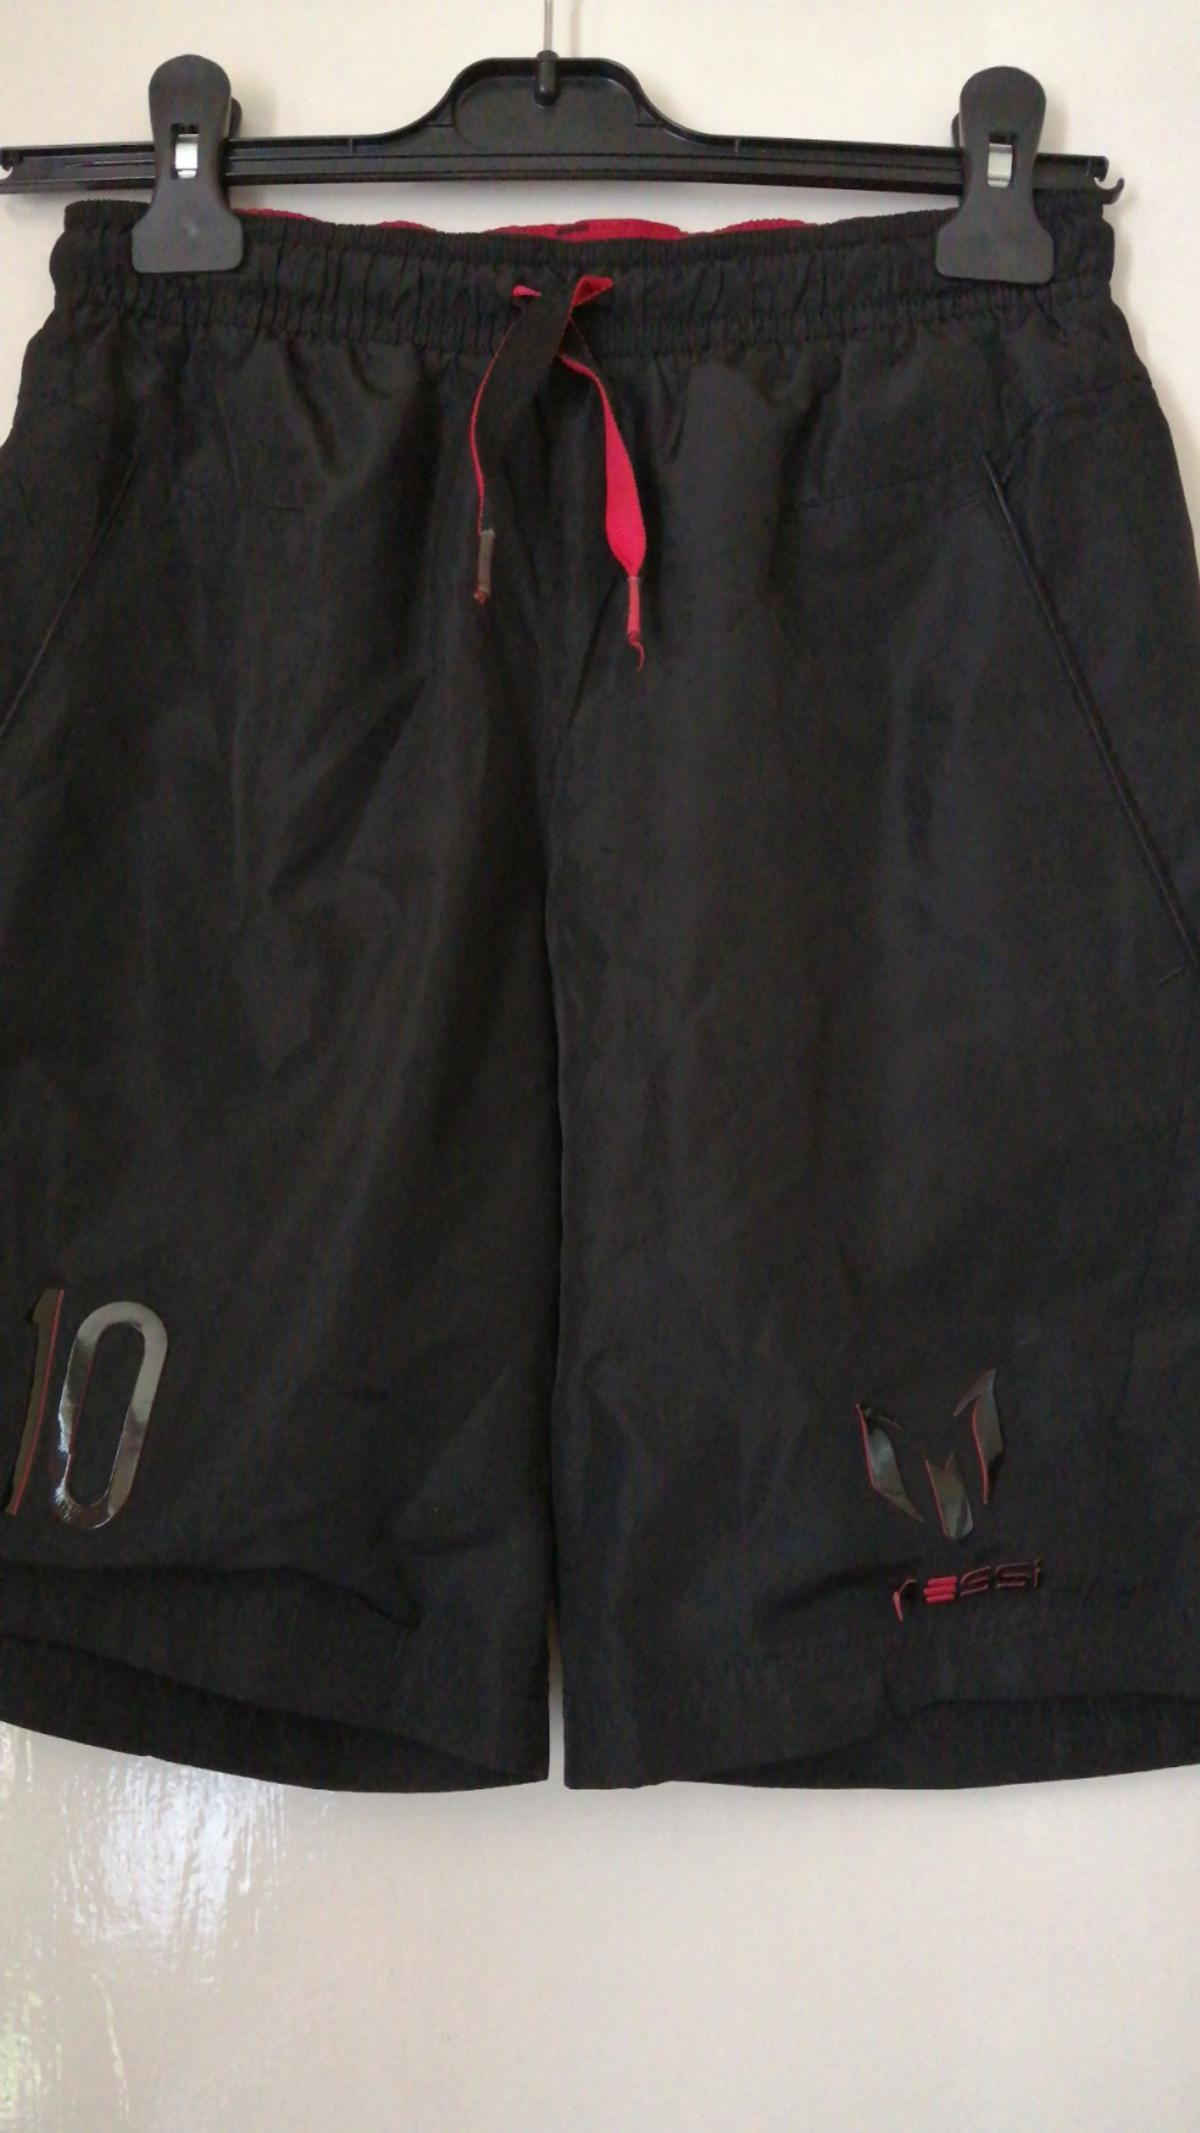 ee6bde23 messi adidas shorts in BD6 Bradford for £2.50 for sale - Shpock